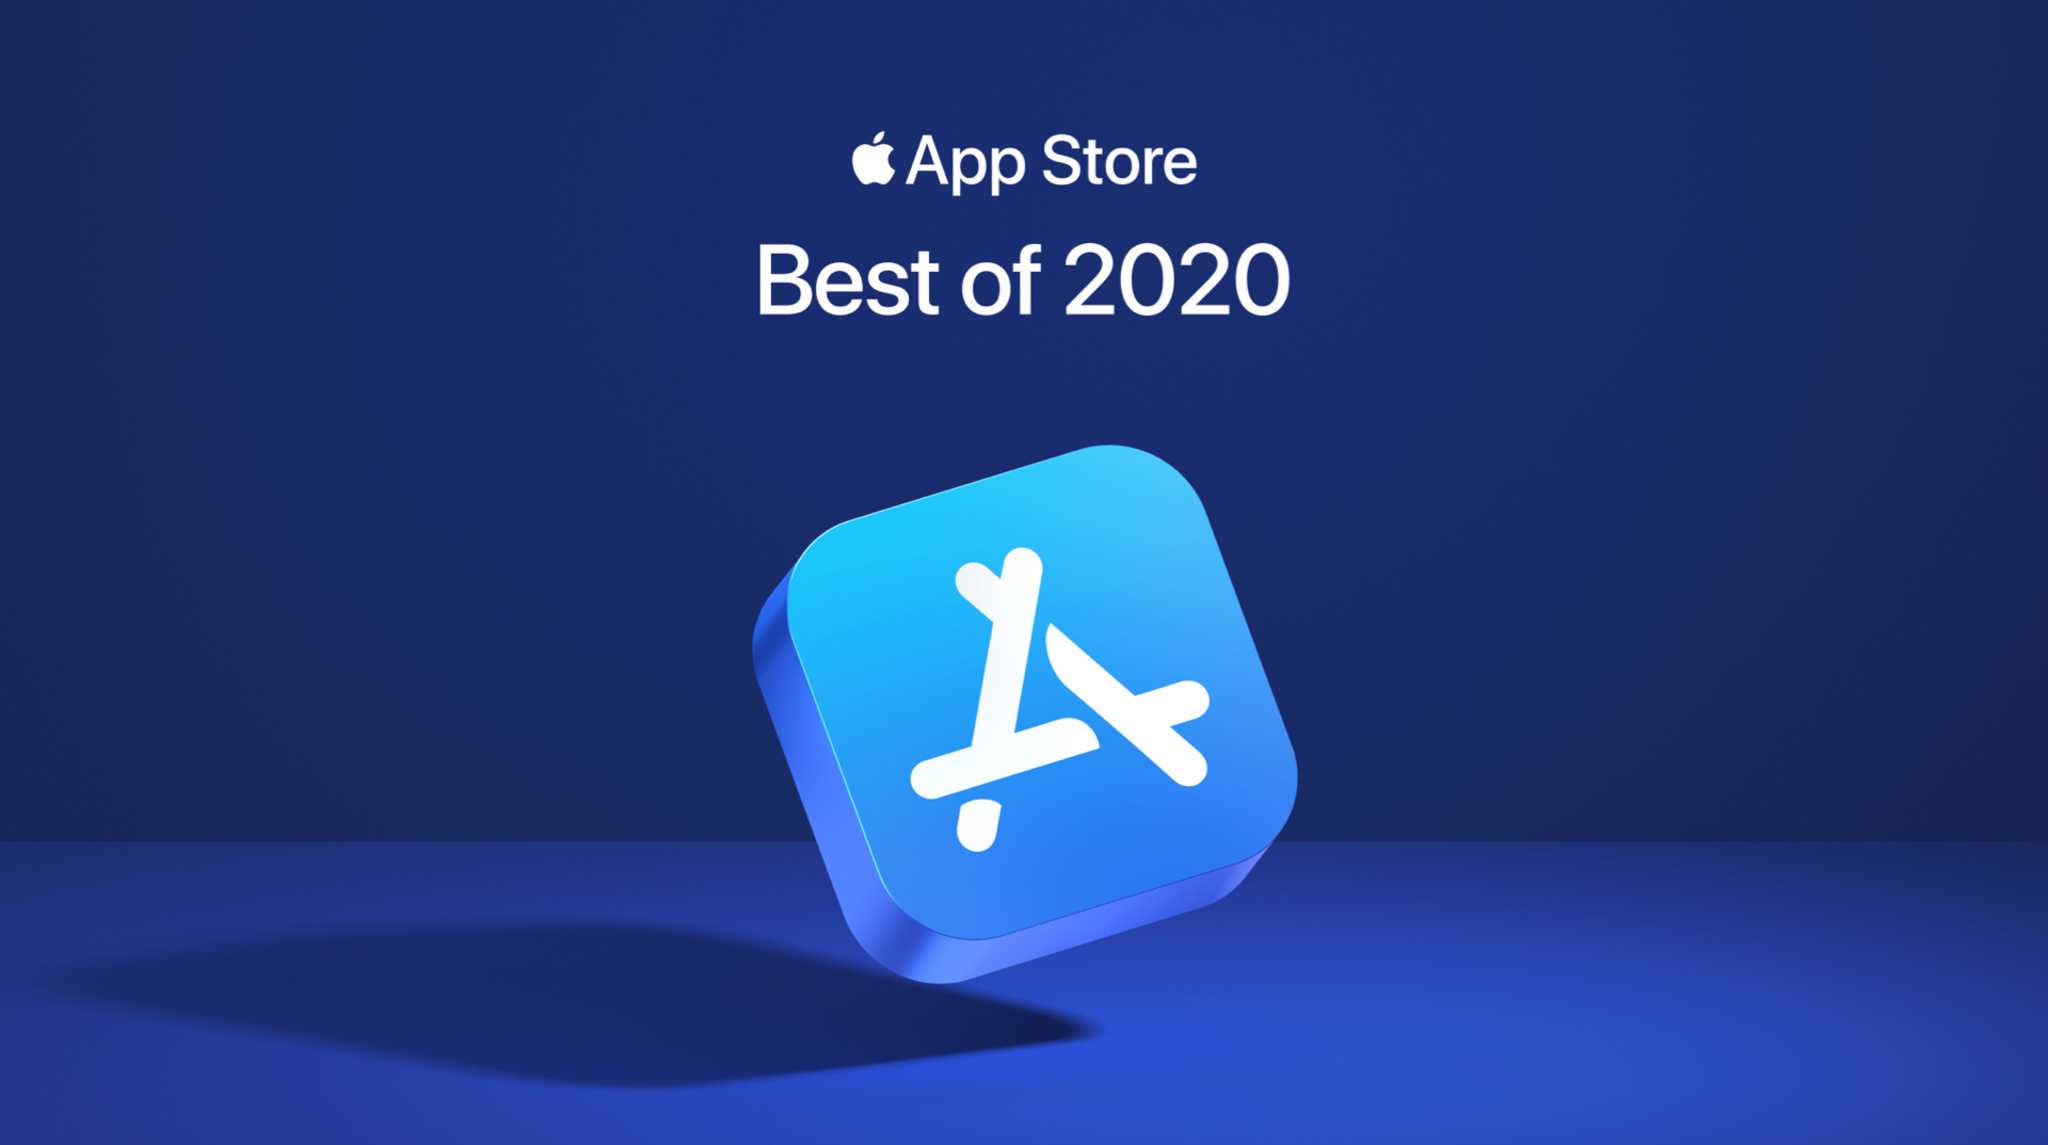 Best of 2020 winners icon